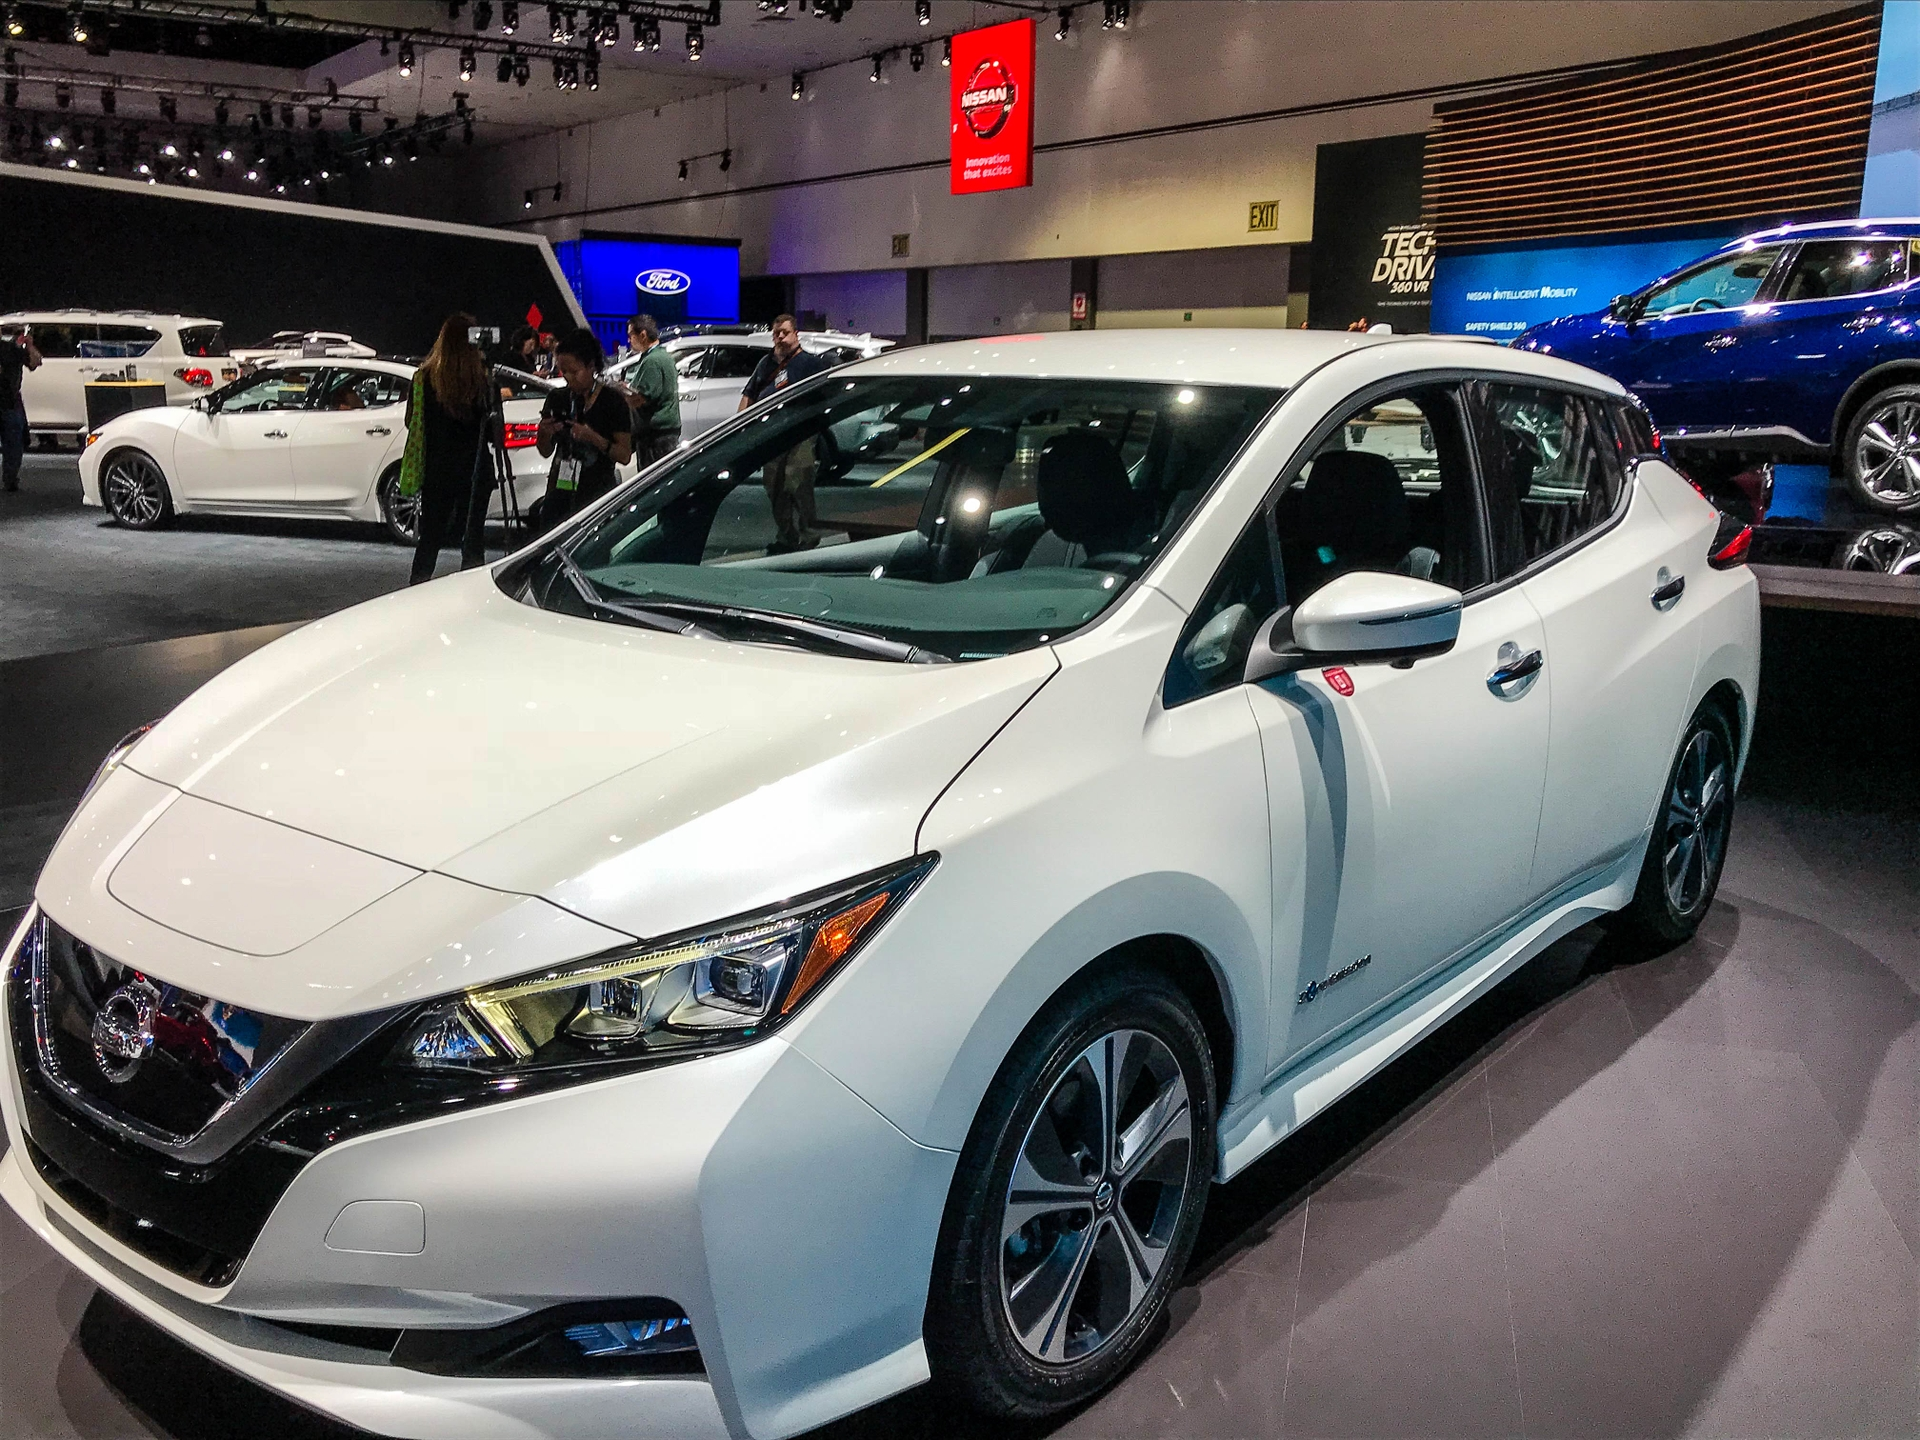 Nissan is offering a $3,500 rebate for SCE residential customers.